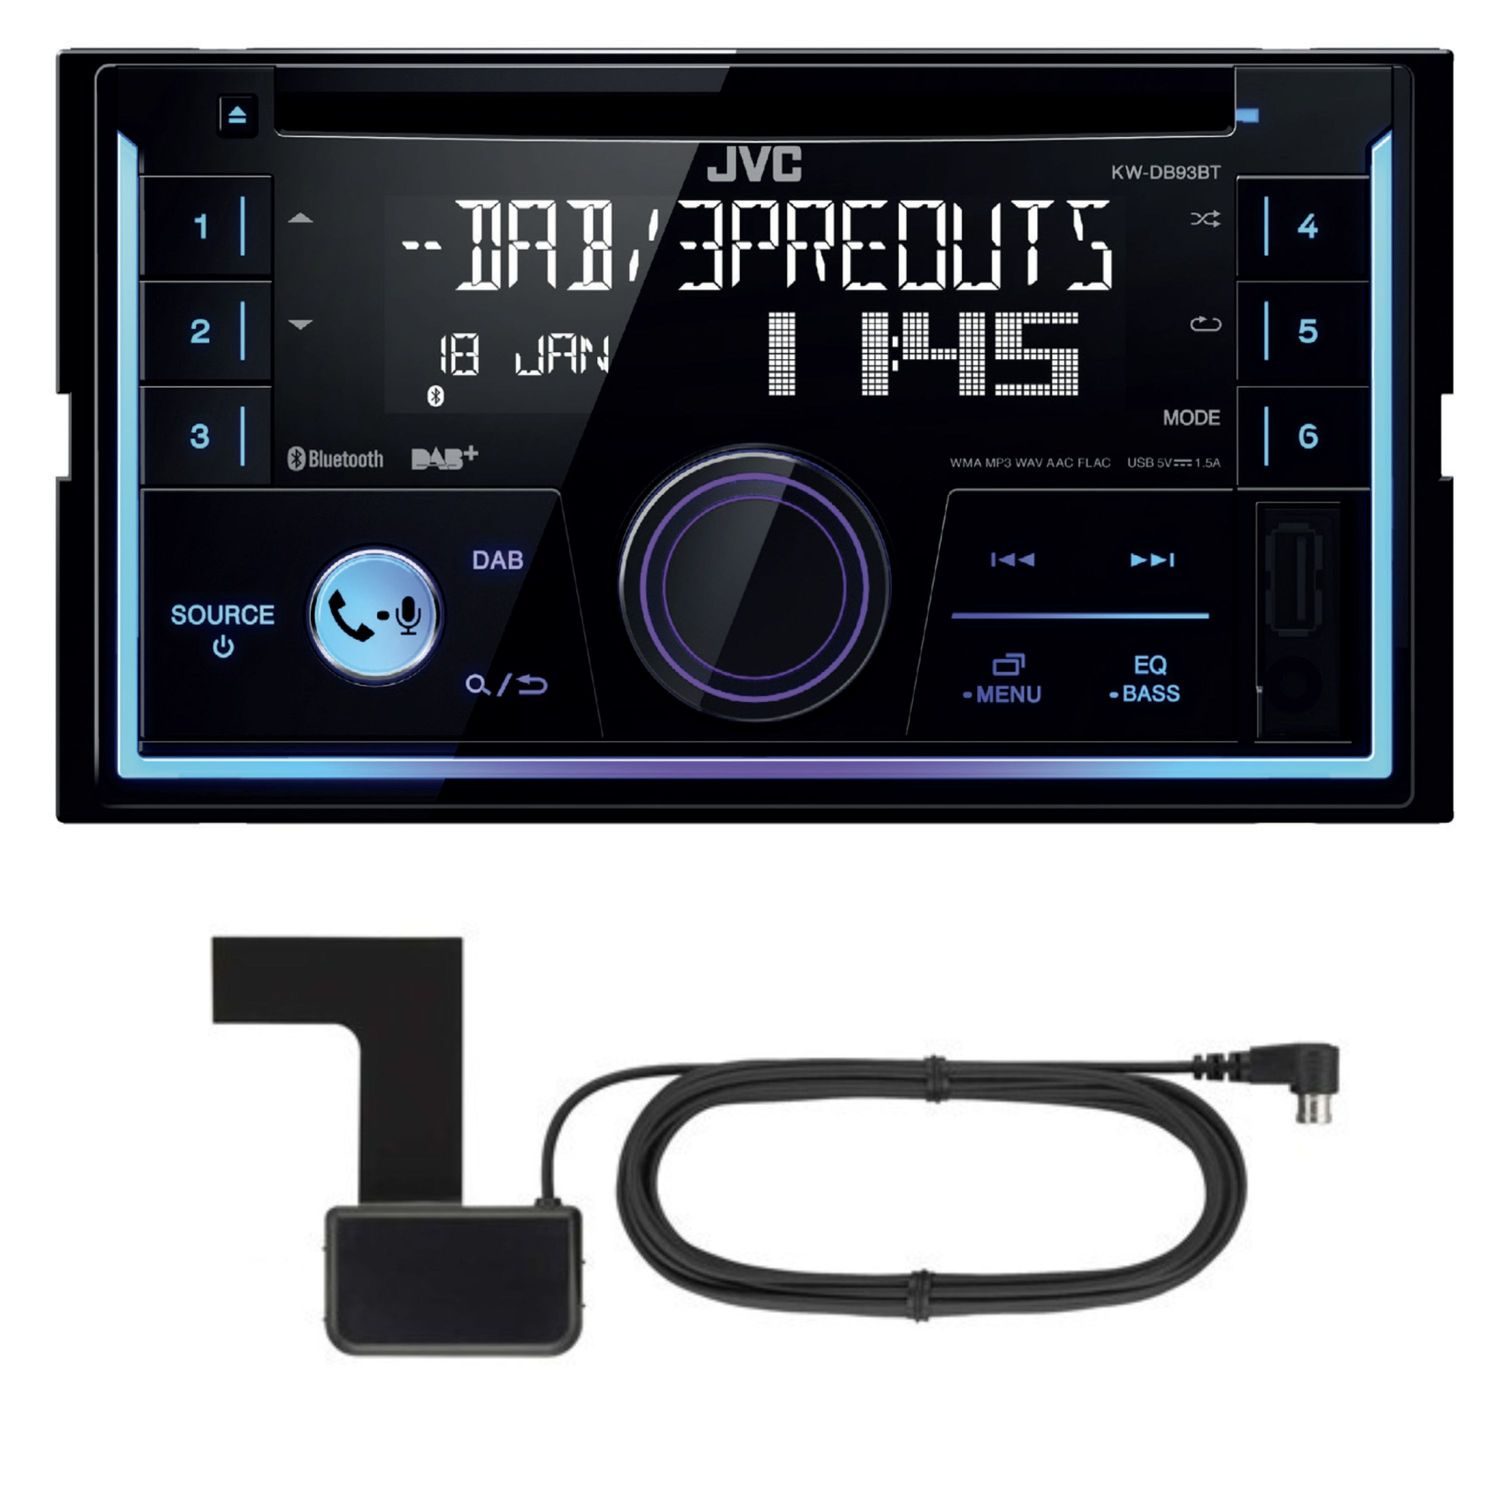 jvc kw db93bt 2 din cd mp3 dab autoradio usb bluetooth. Black Bedroom Furniture Sets. Home Design Ideas